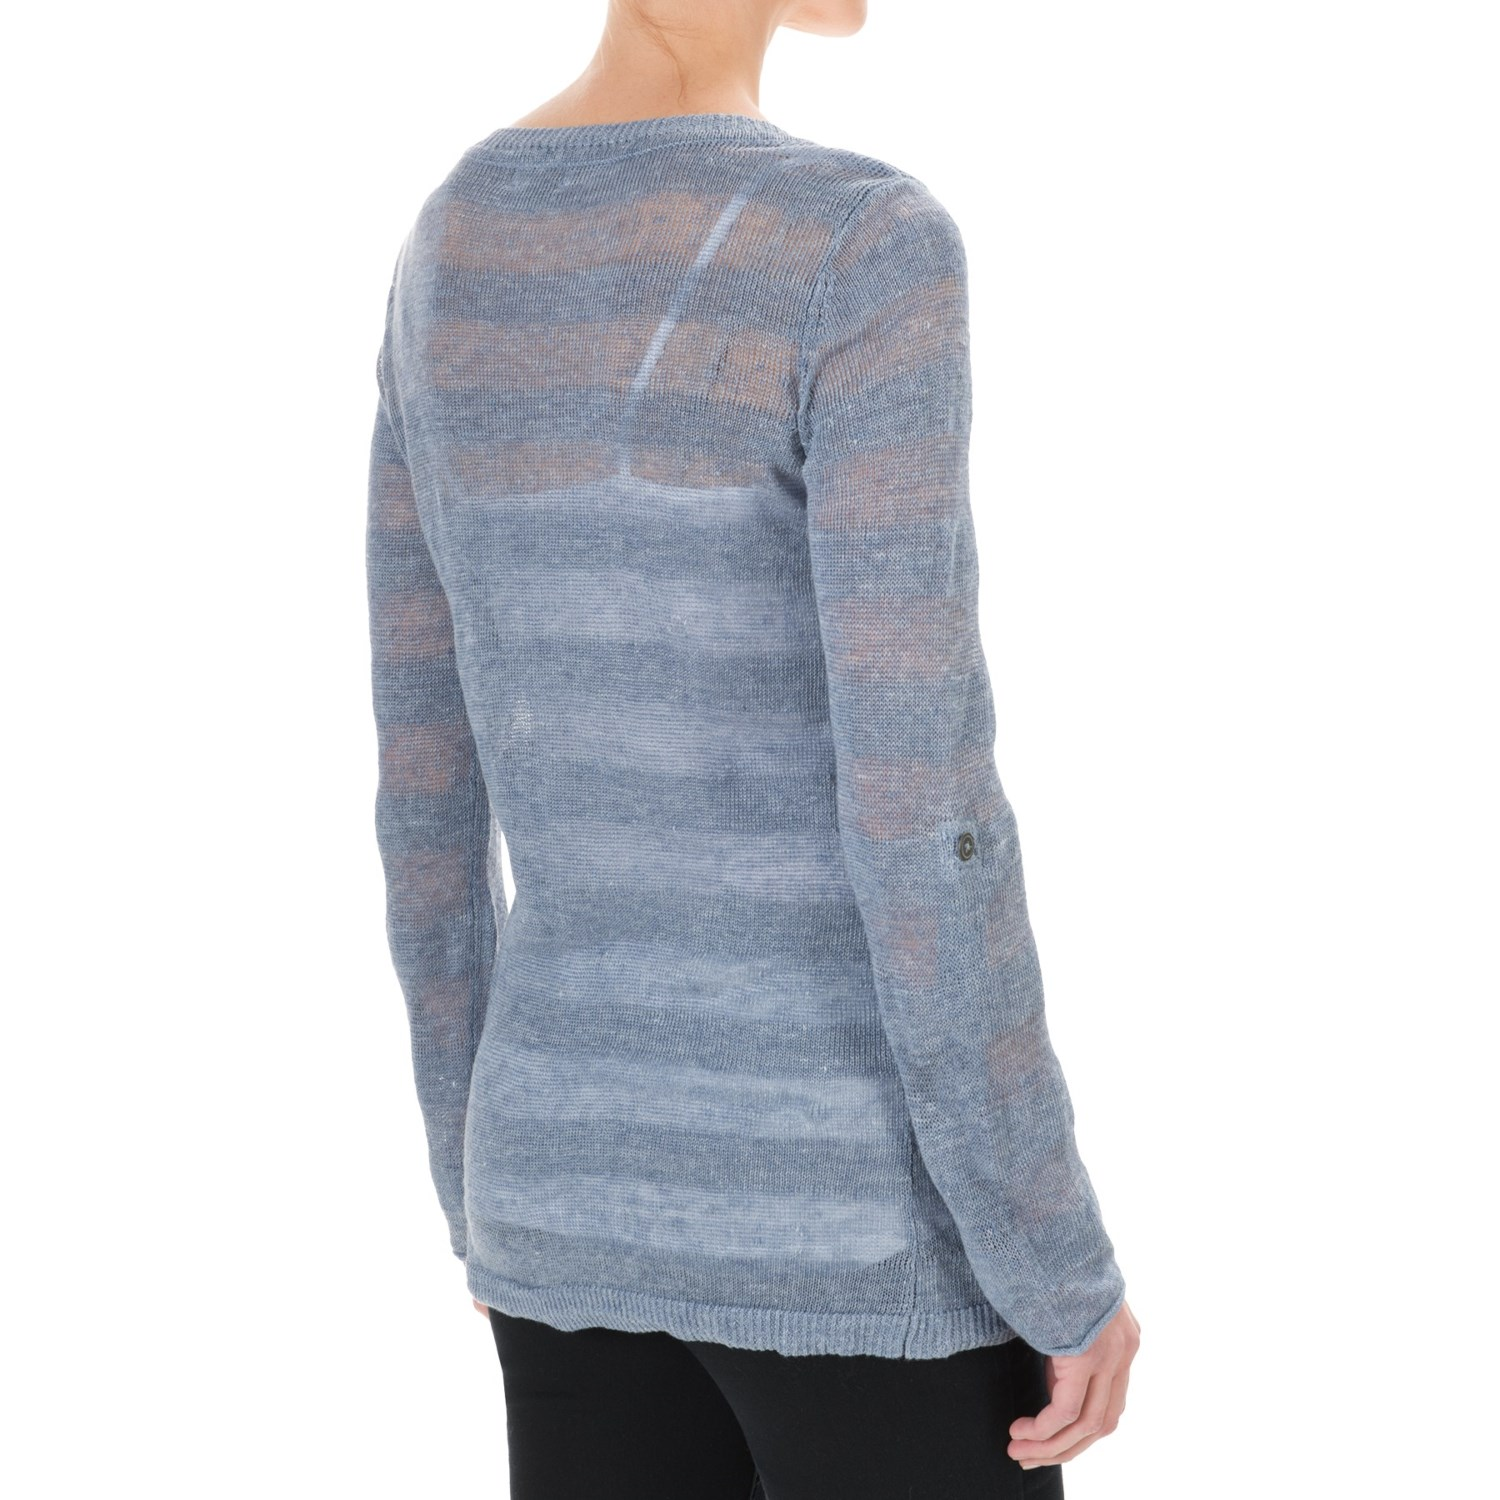 Royal Robbins Tupelo Knit Cardigan Sweater (For Women) - Save 59%